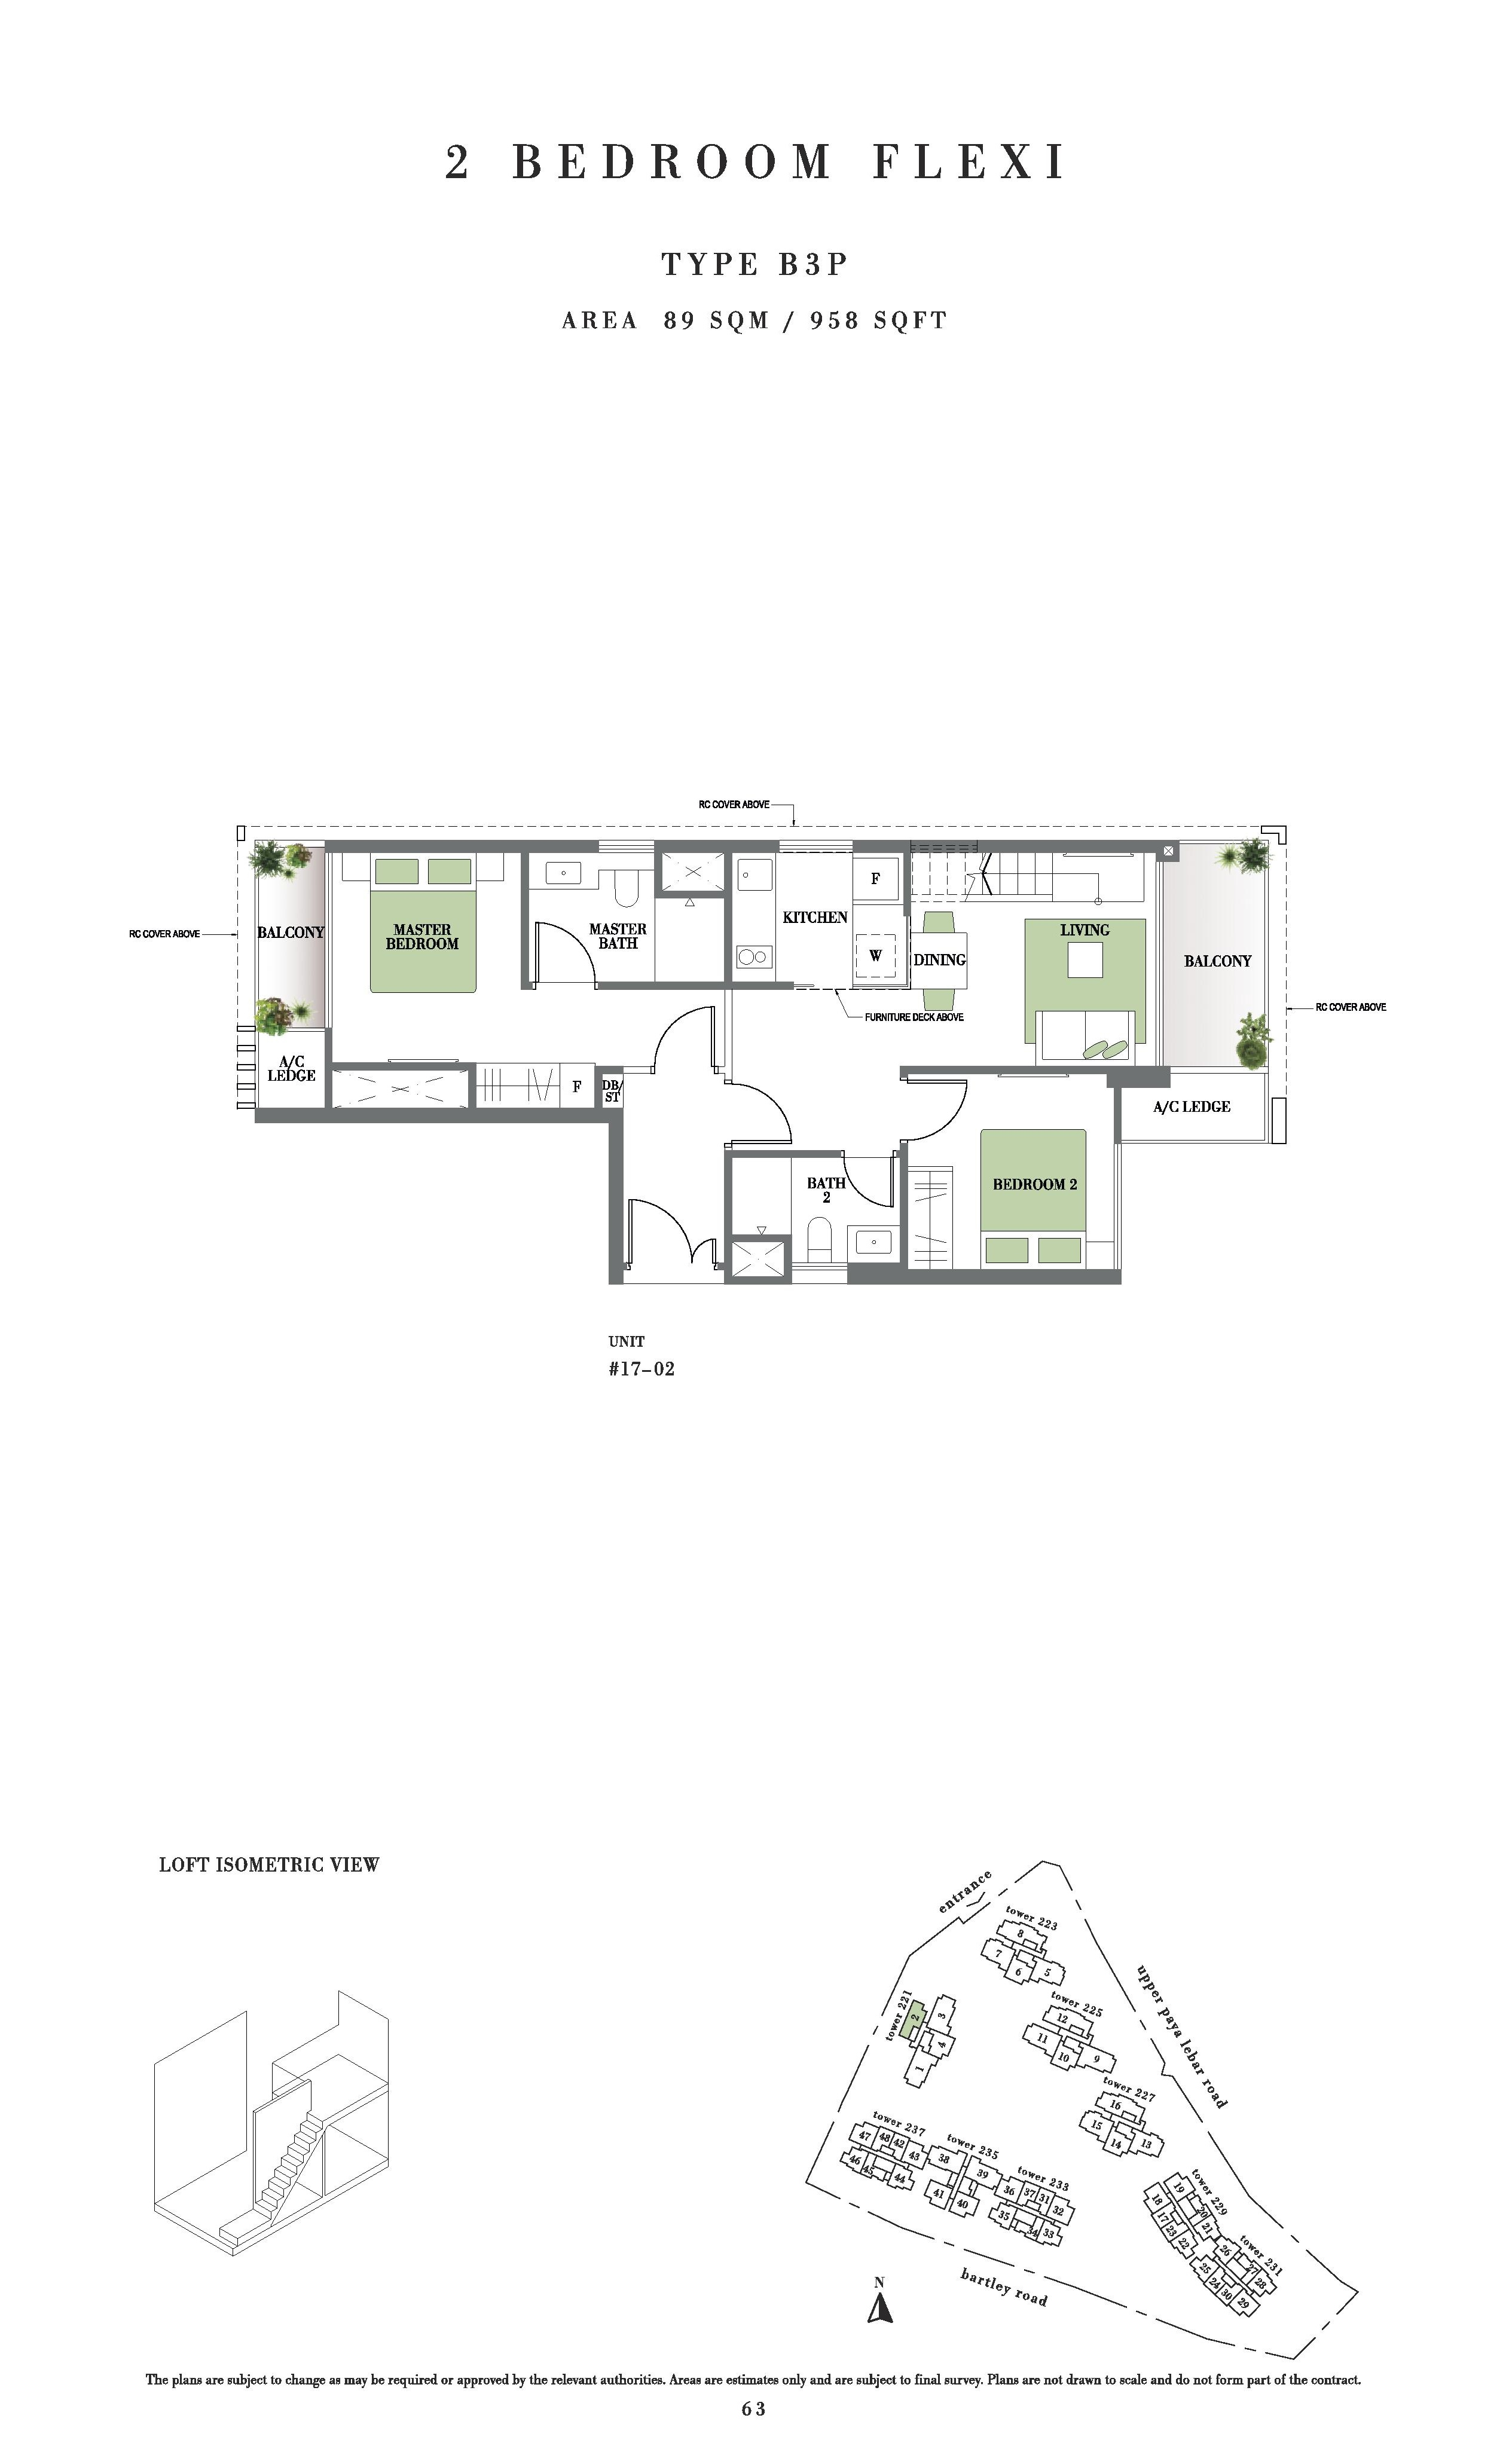 Botanique @ Bartley 2 Bedroom Flexi Floor Plans Type B3P